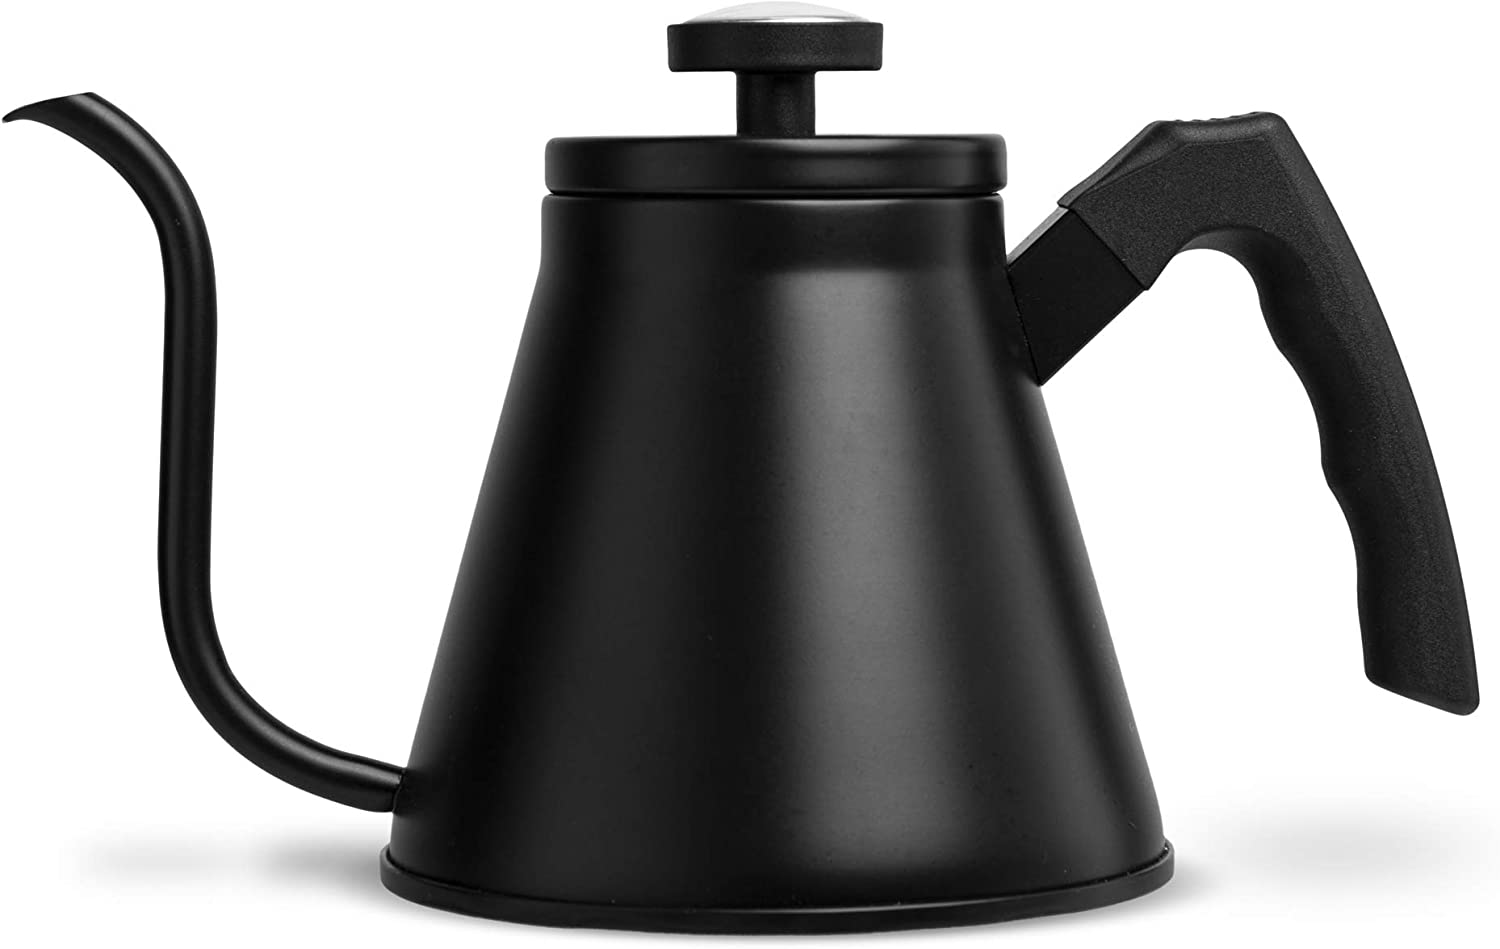 Amazon: Gooseneck Stovetop Kettle